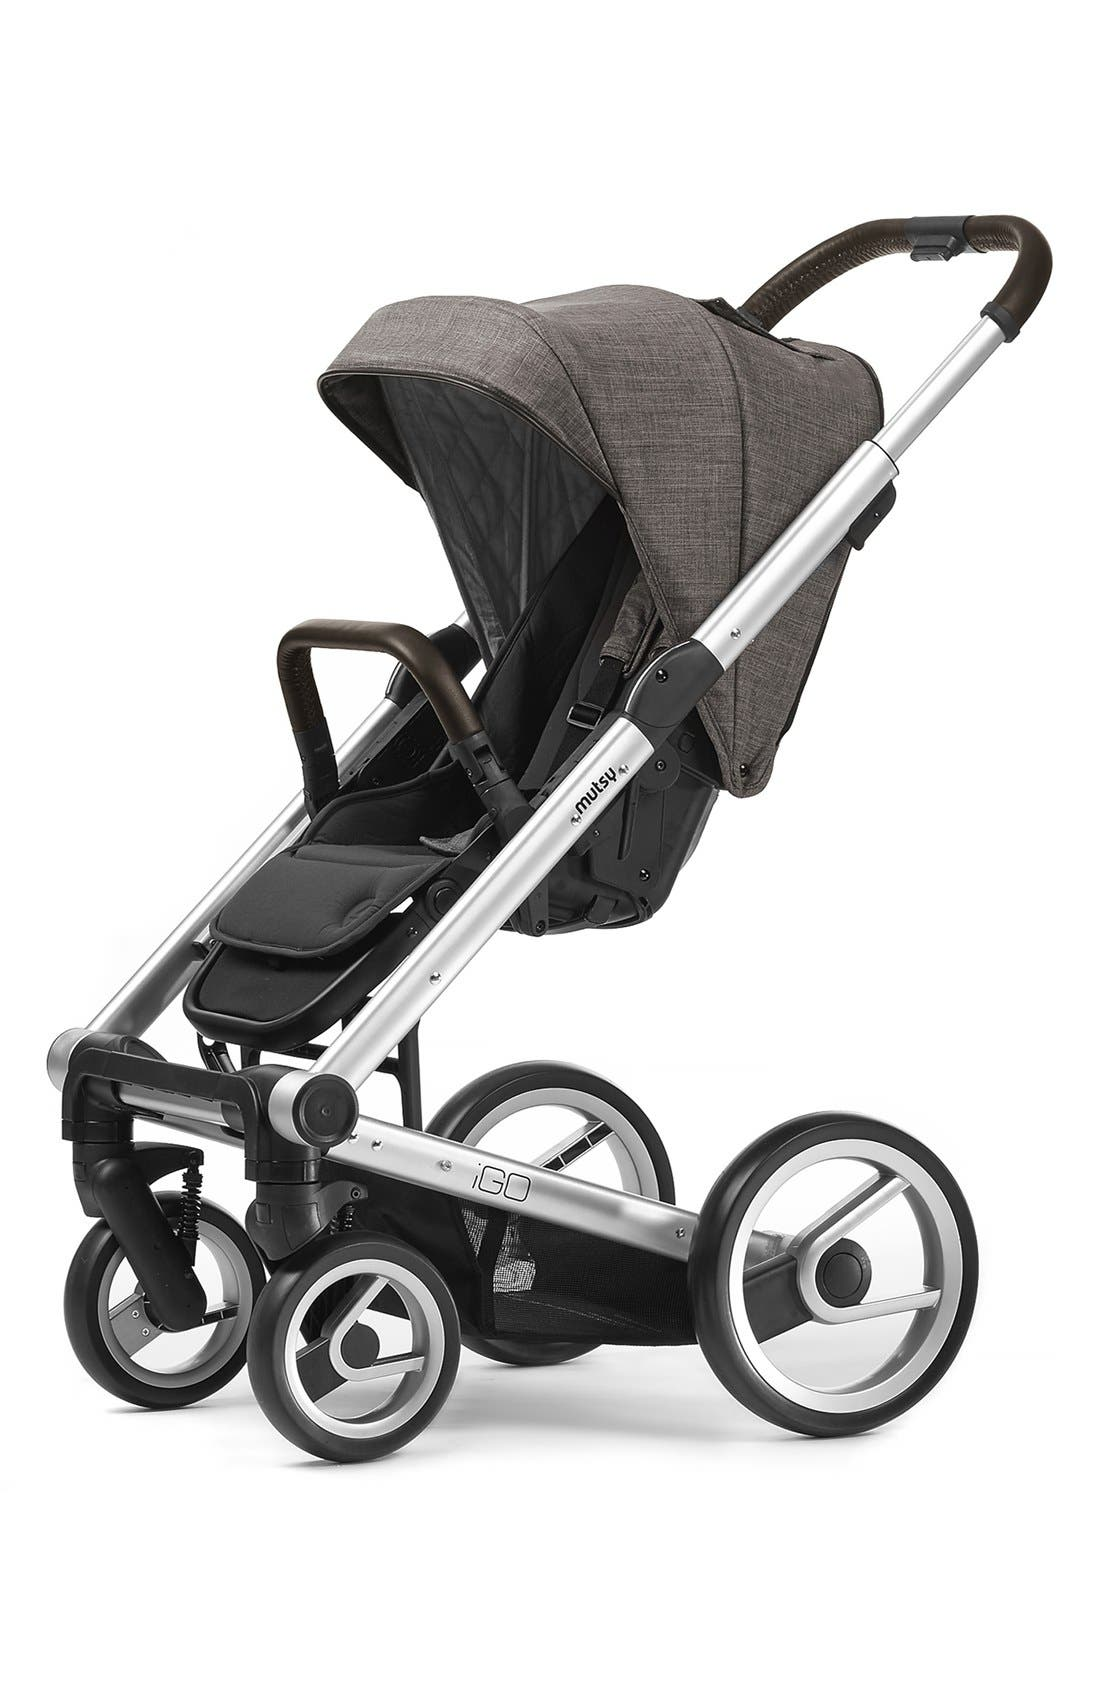 Igo - Farmer Earth Stroller,                         Main,                         color, 211